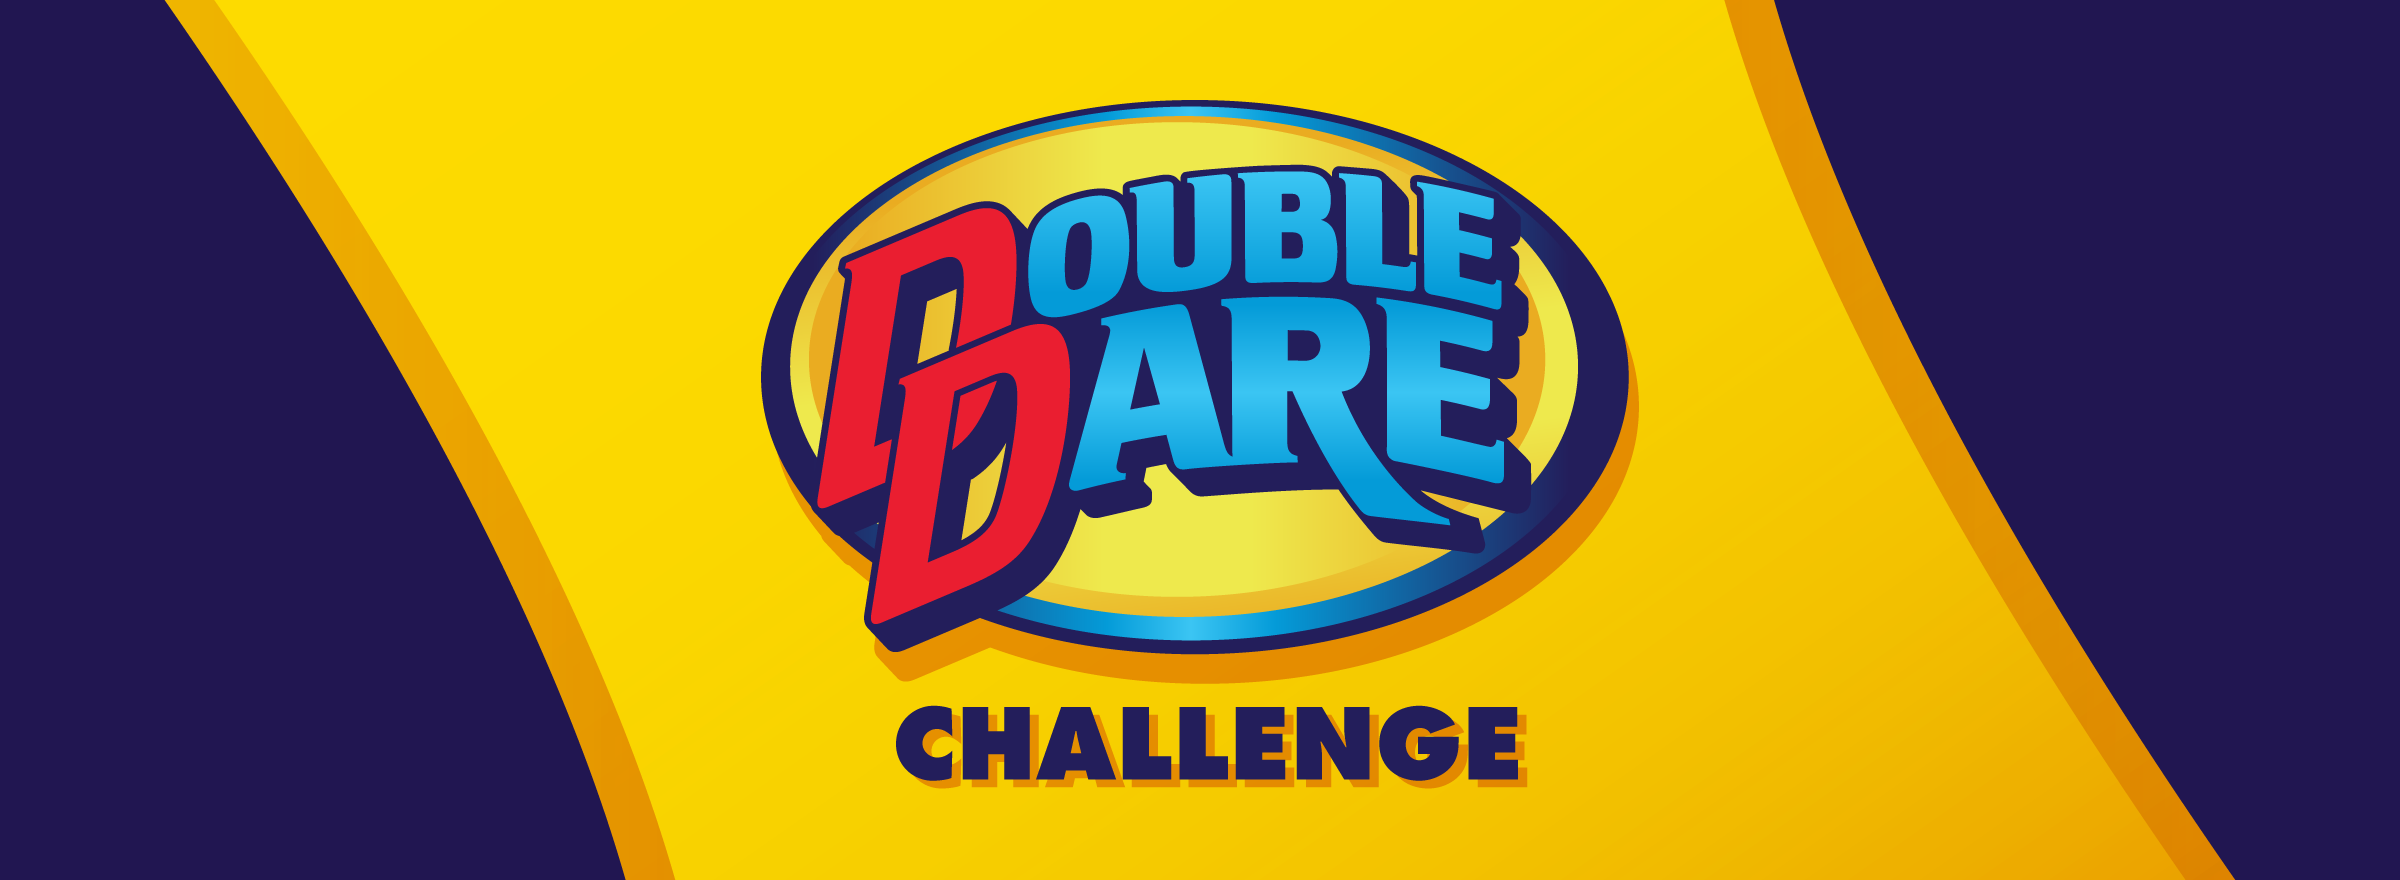 Image Result For Double Dare Nickelodeon Game Shows Double Dare Game Show